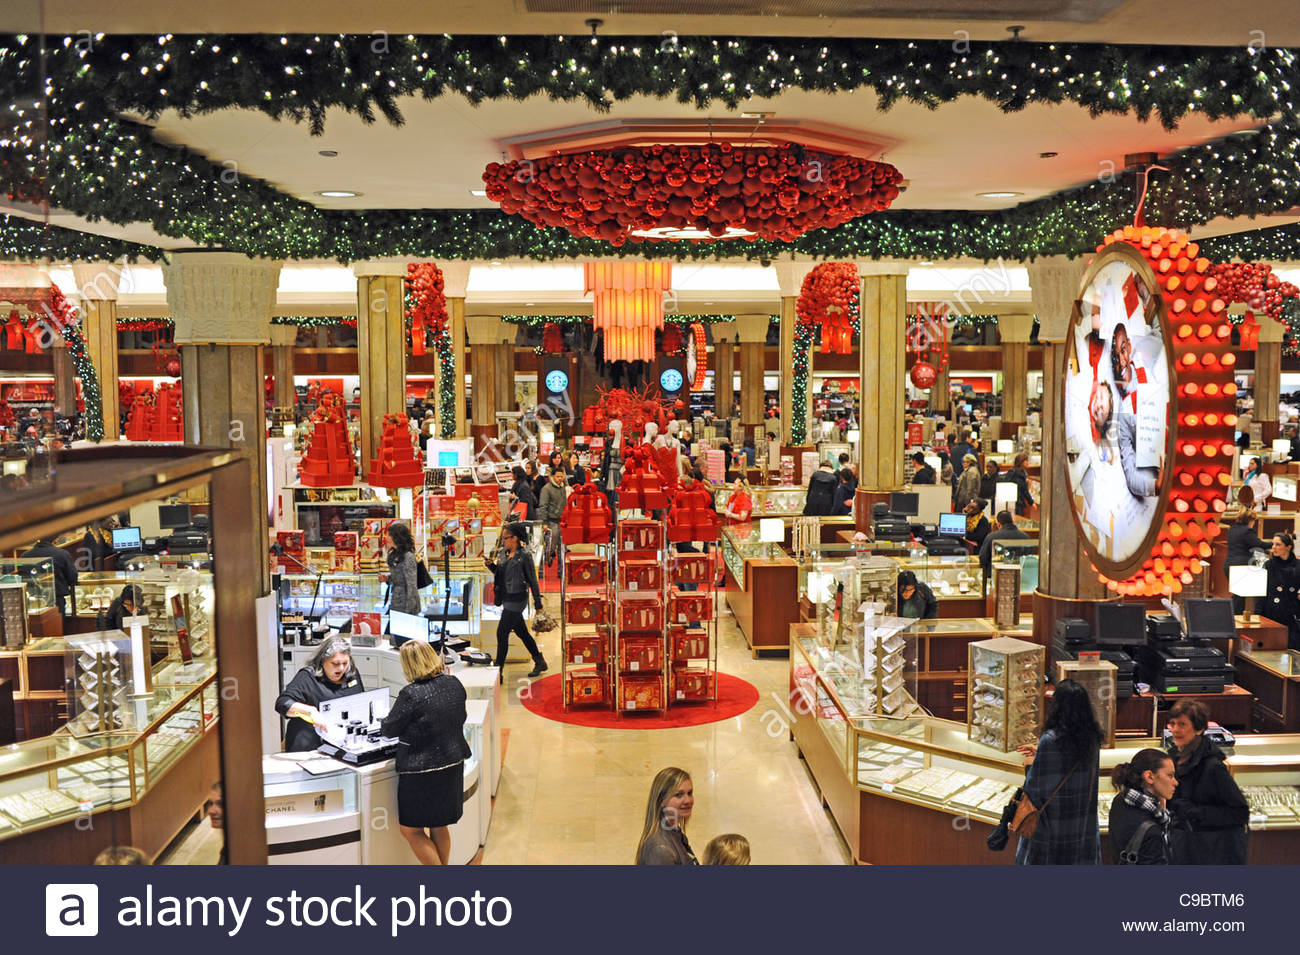 Christmas Shopping At Macy S Department Store Midtown Manhattan New Stock Photo Royalty Free